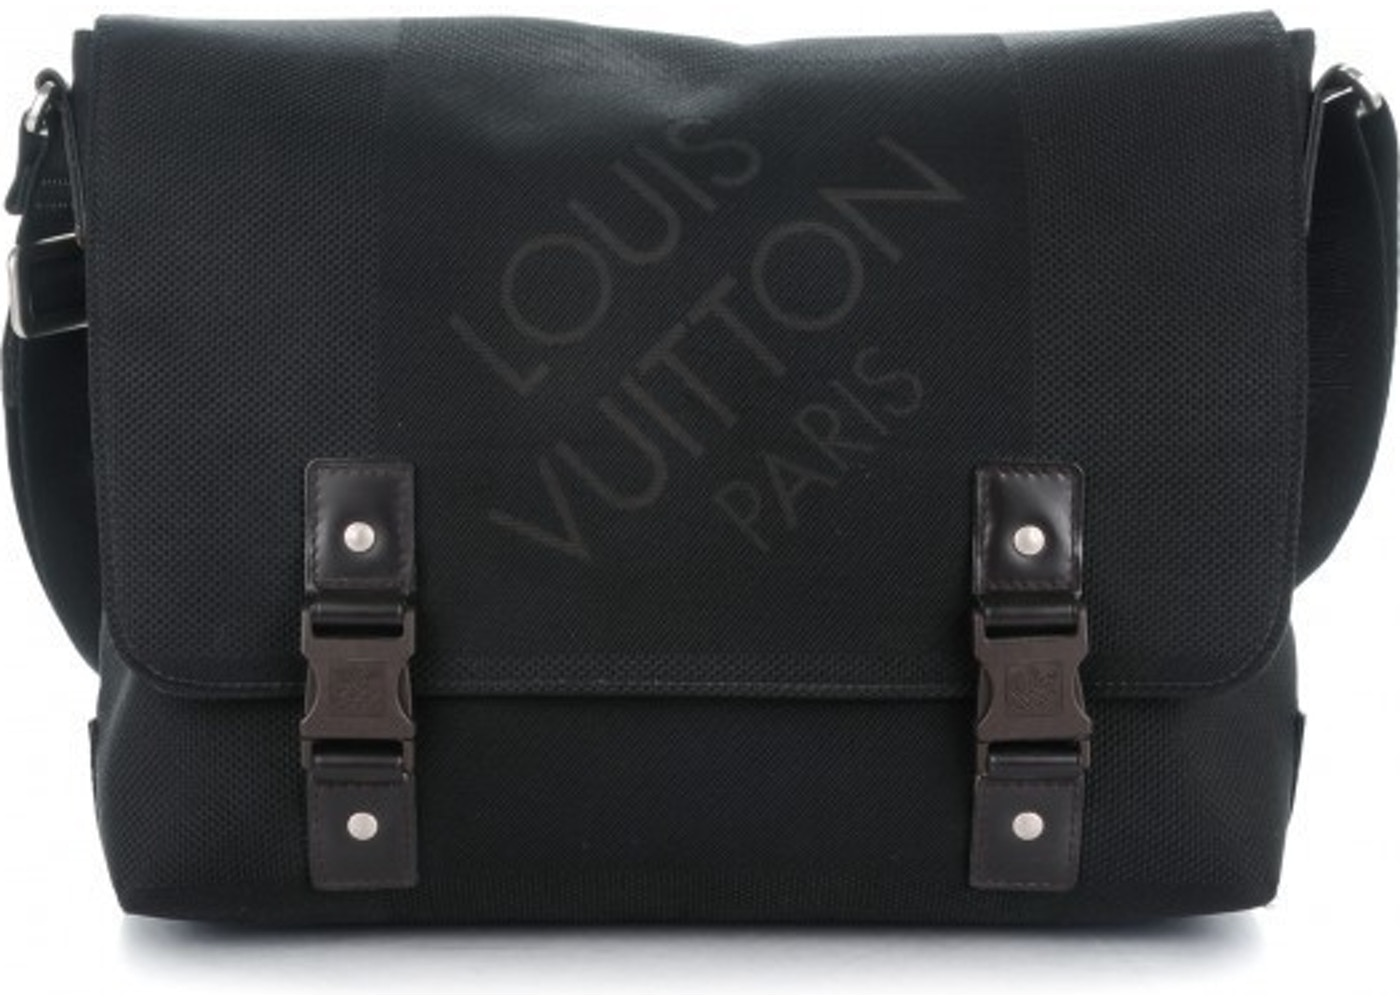 1b673351dc526 Louis Vuitton Shoulder Messenger Loup Damier Geant Noir Black. Damier Geant  Noir Black